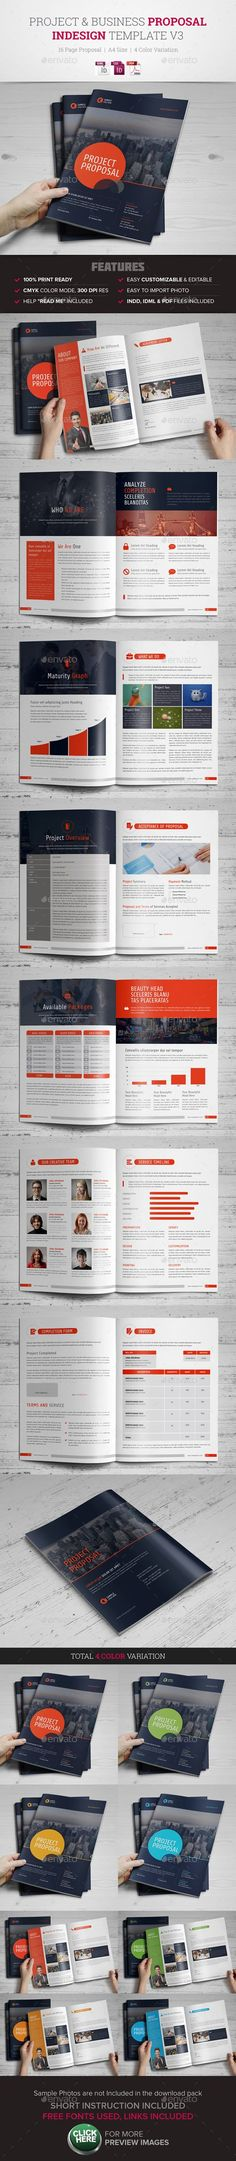 Content Wall - Prezi Template proposal Pinterest